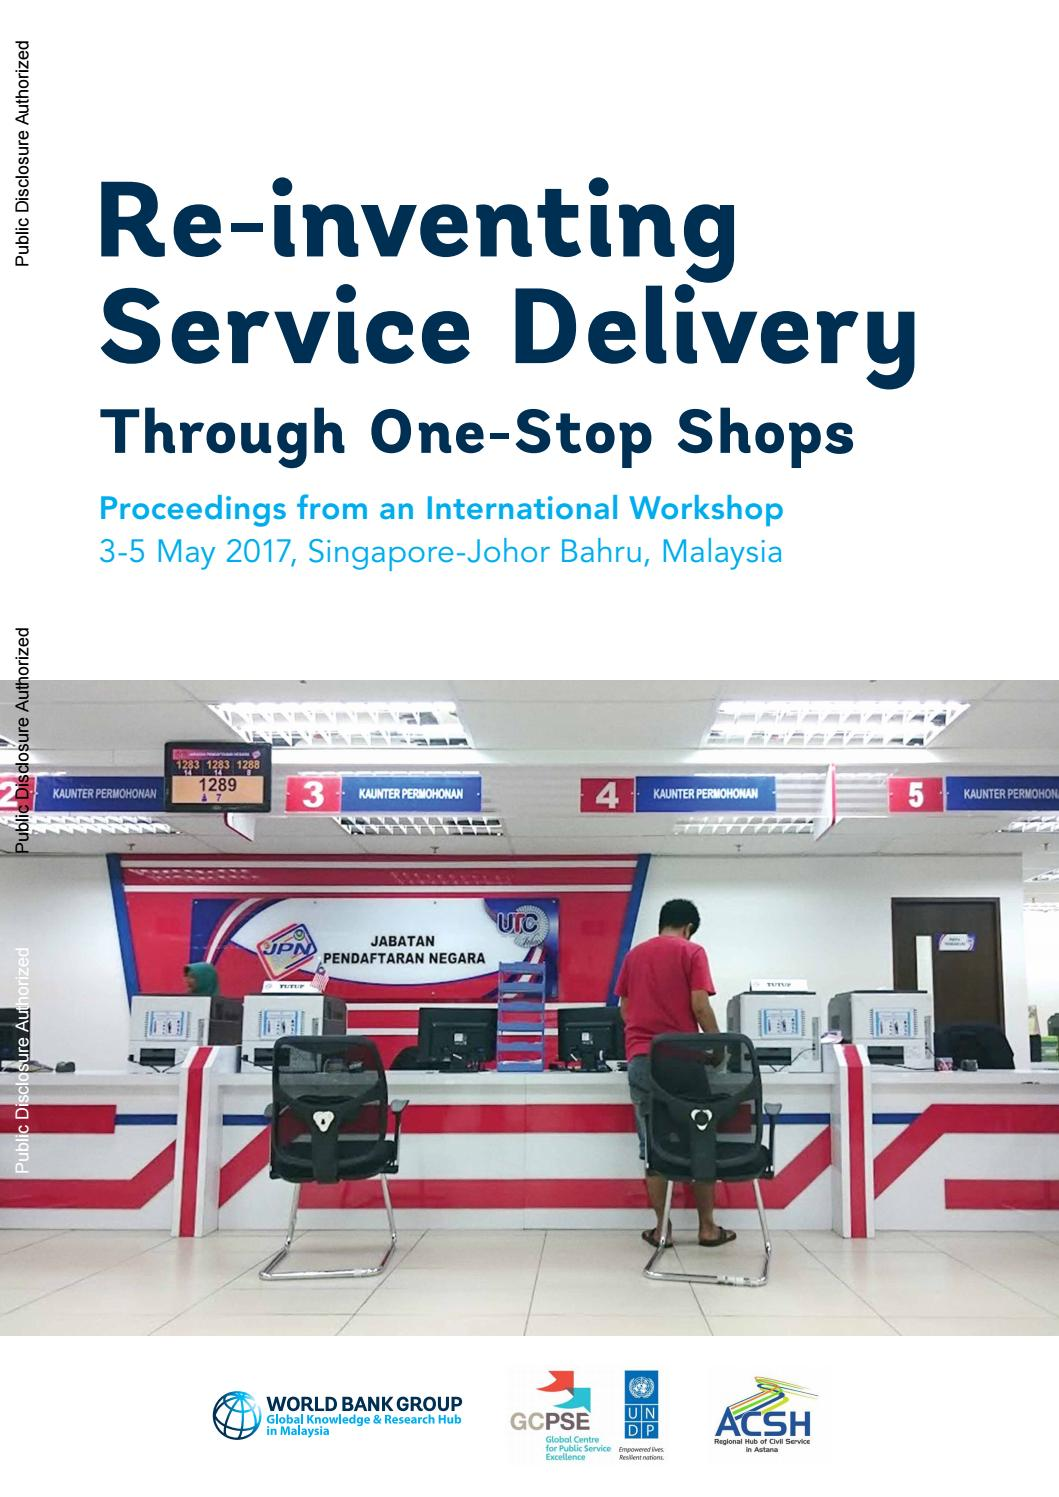 Re-inventing Service Delivery Through One-Stop Shops by UNDP